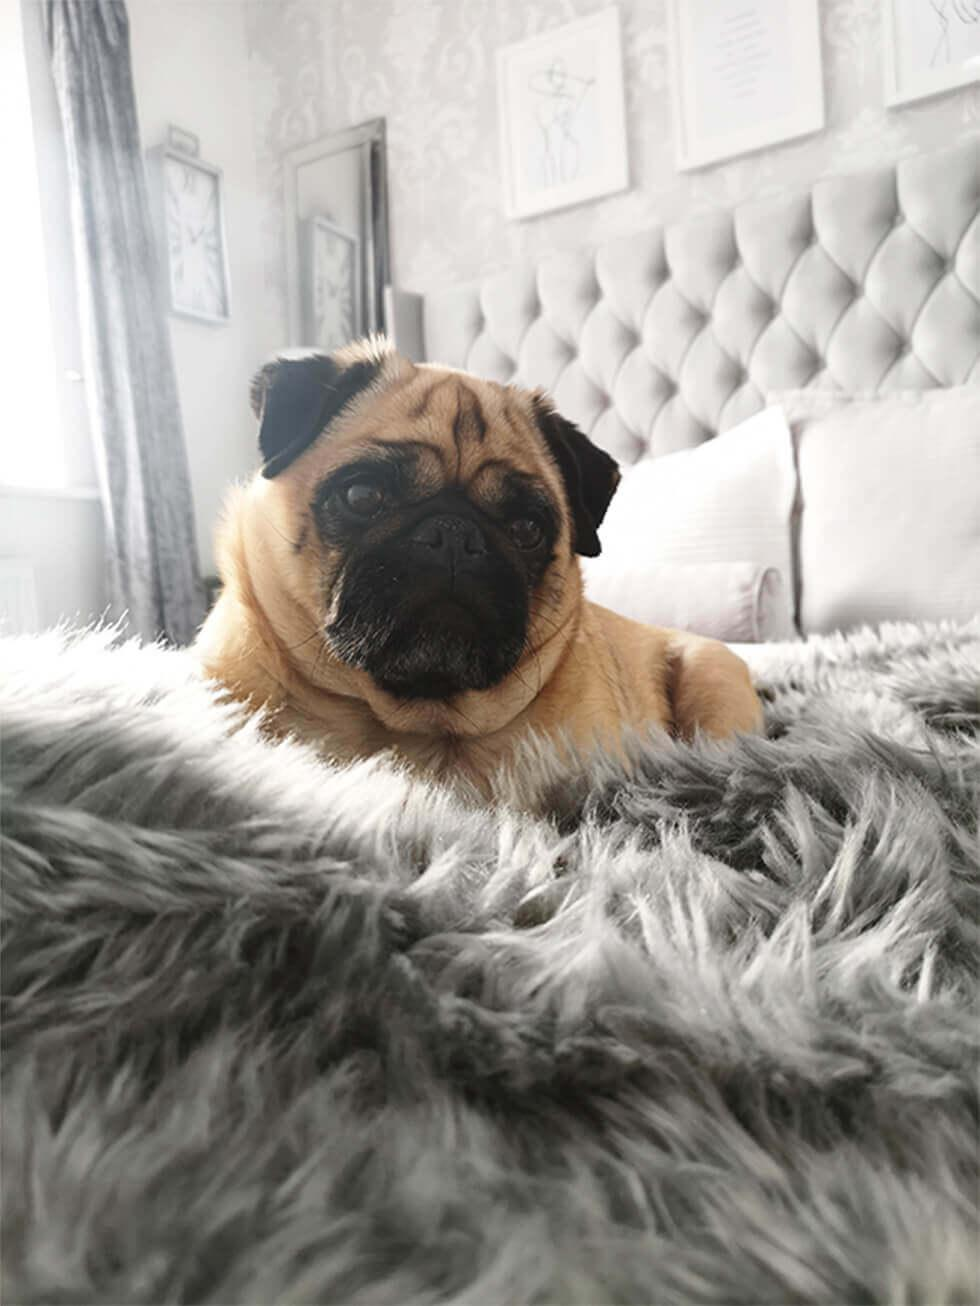 Close up of a pug sitting on a grey fabric bed with a fur throw